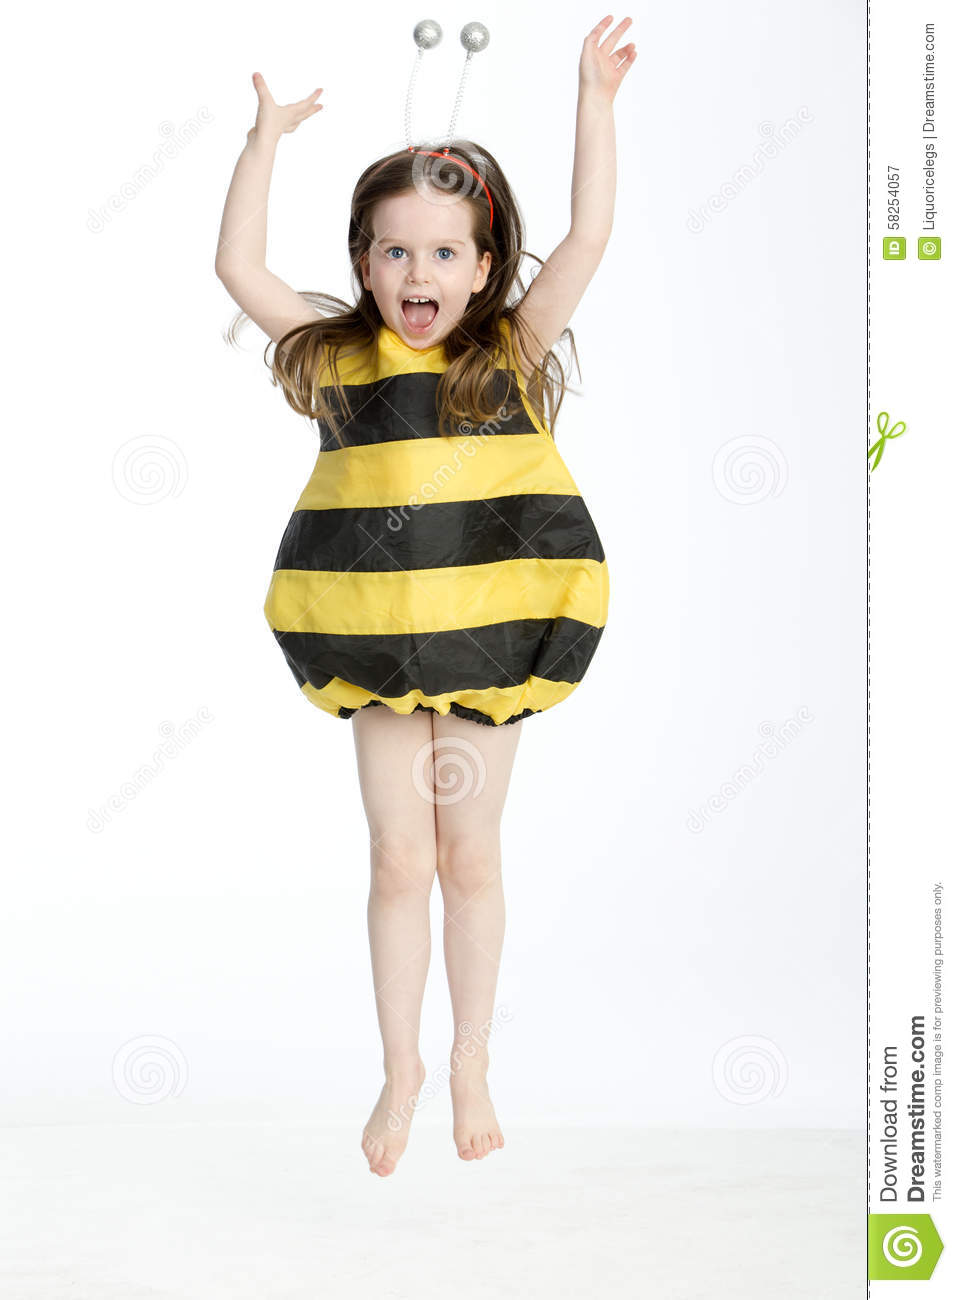 bumble bee bangs girl